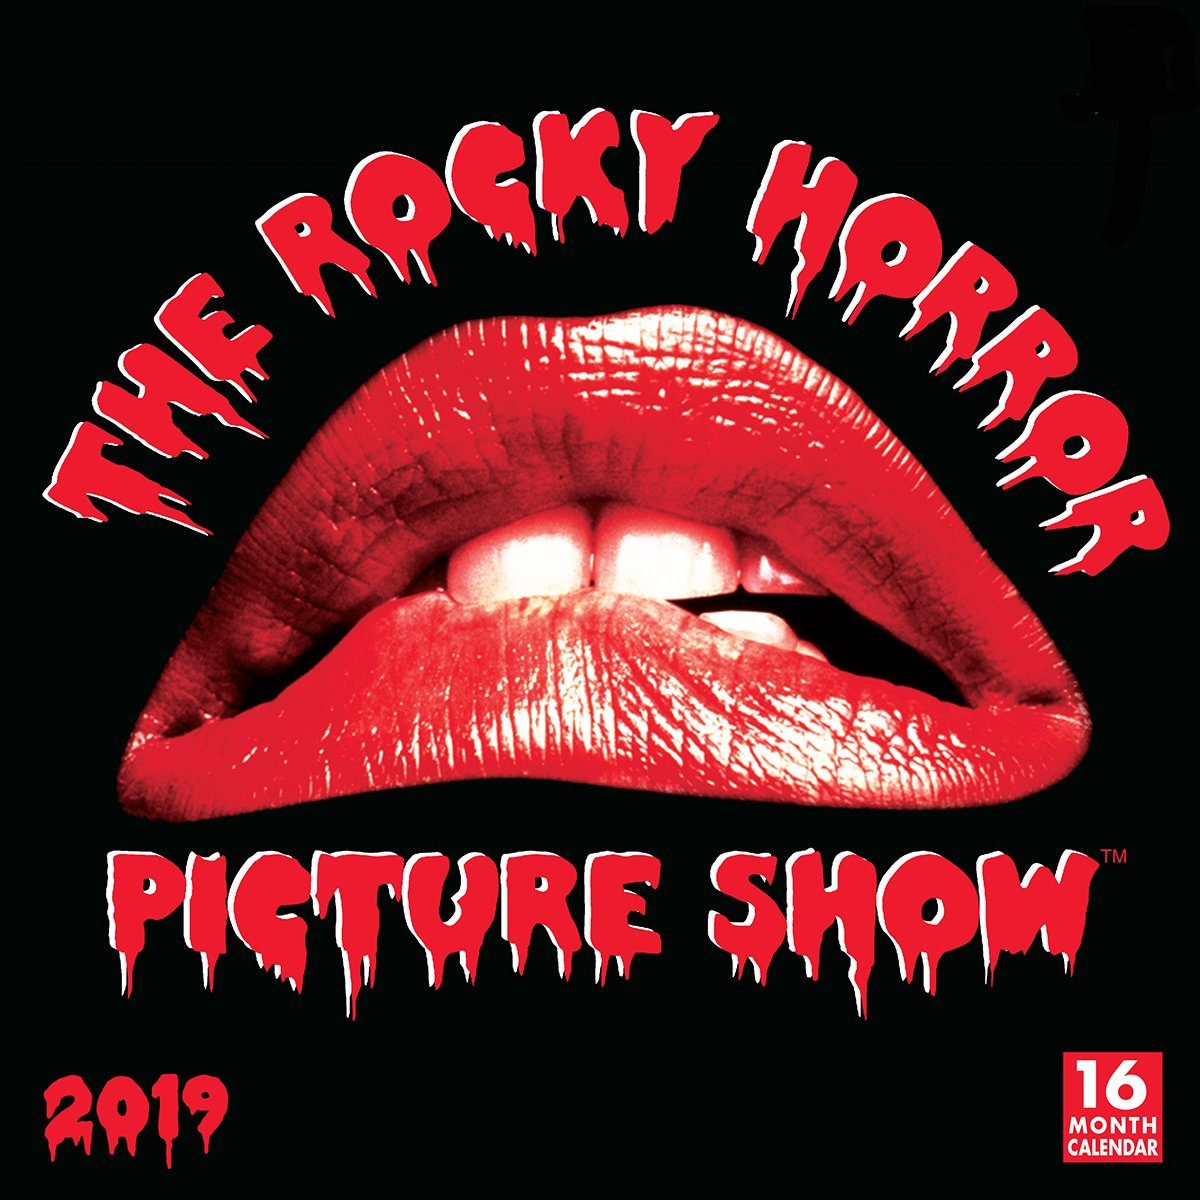 Calendario 2919.The Rocky Horror Picture Show 2019 Wall Calendar Sellers